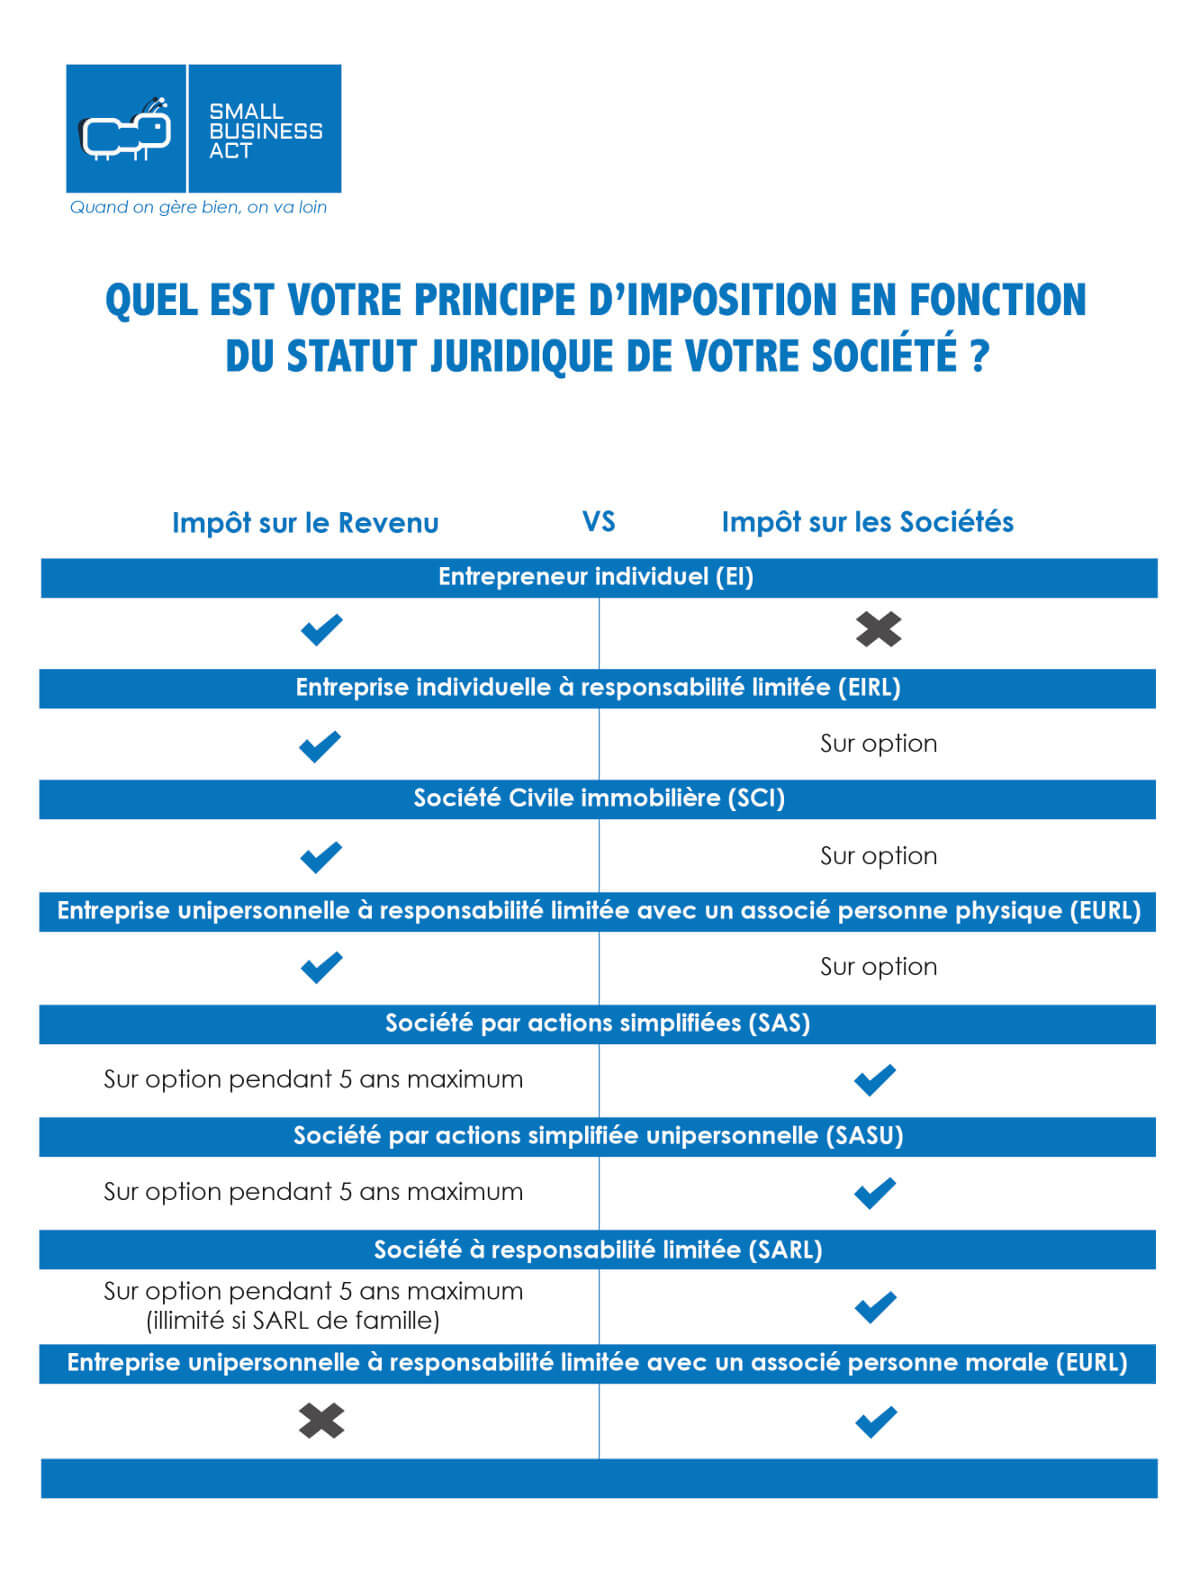 Taux d'imposition IR VS IS